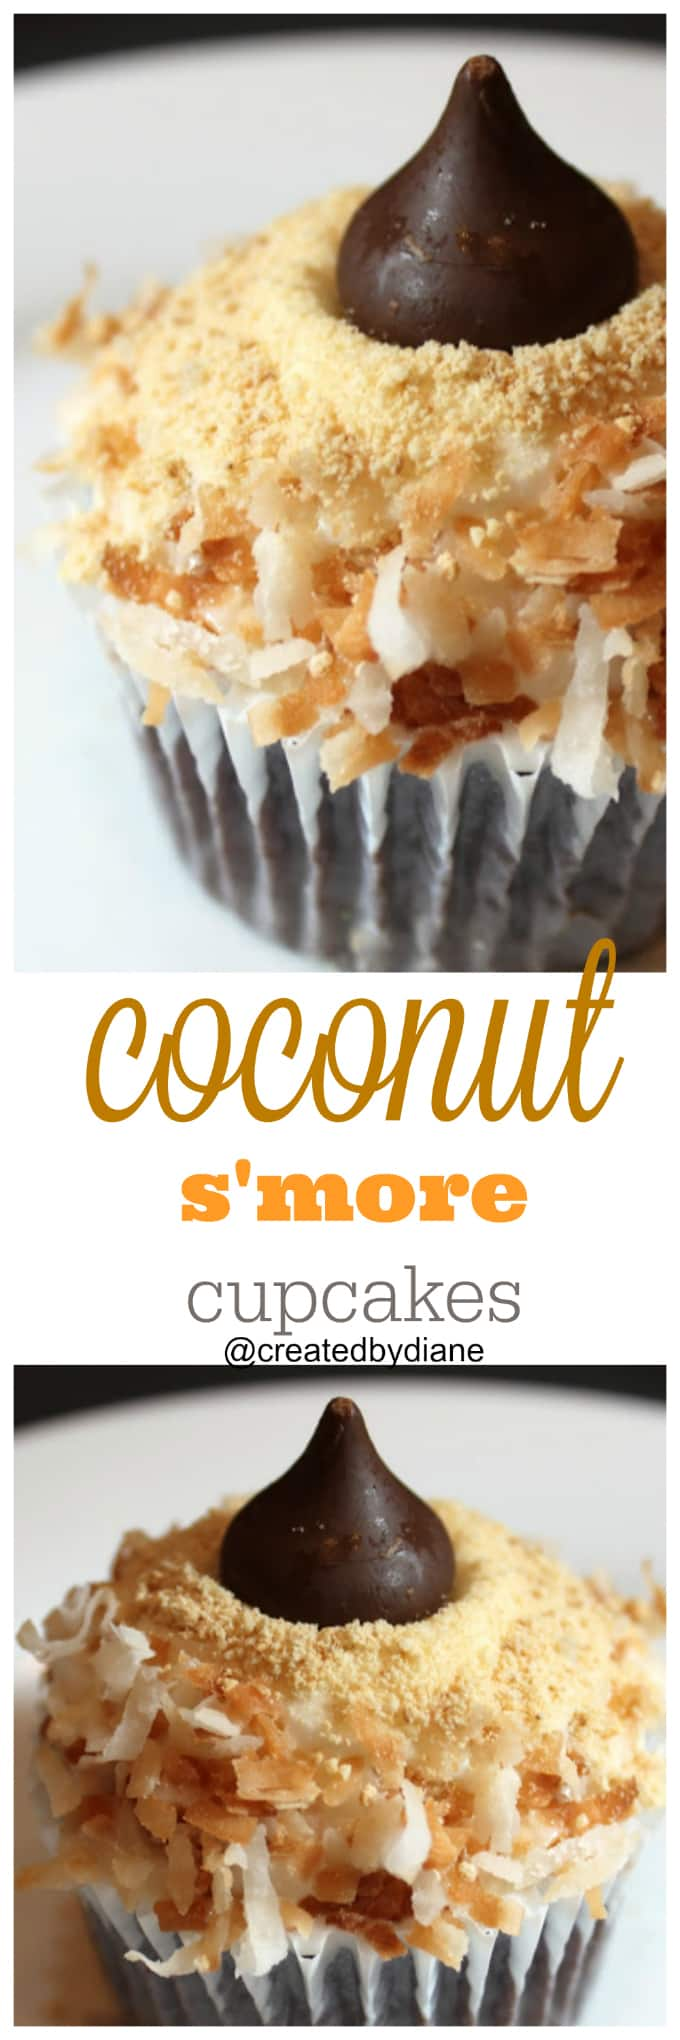 coconut s'more cupcakes @createdbydiane